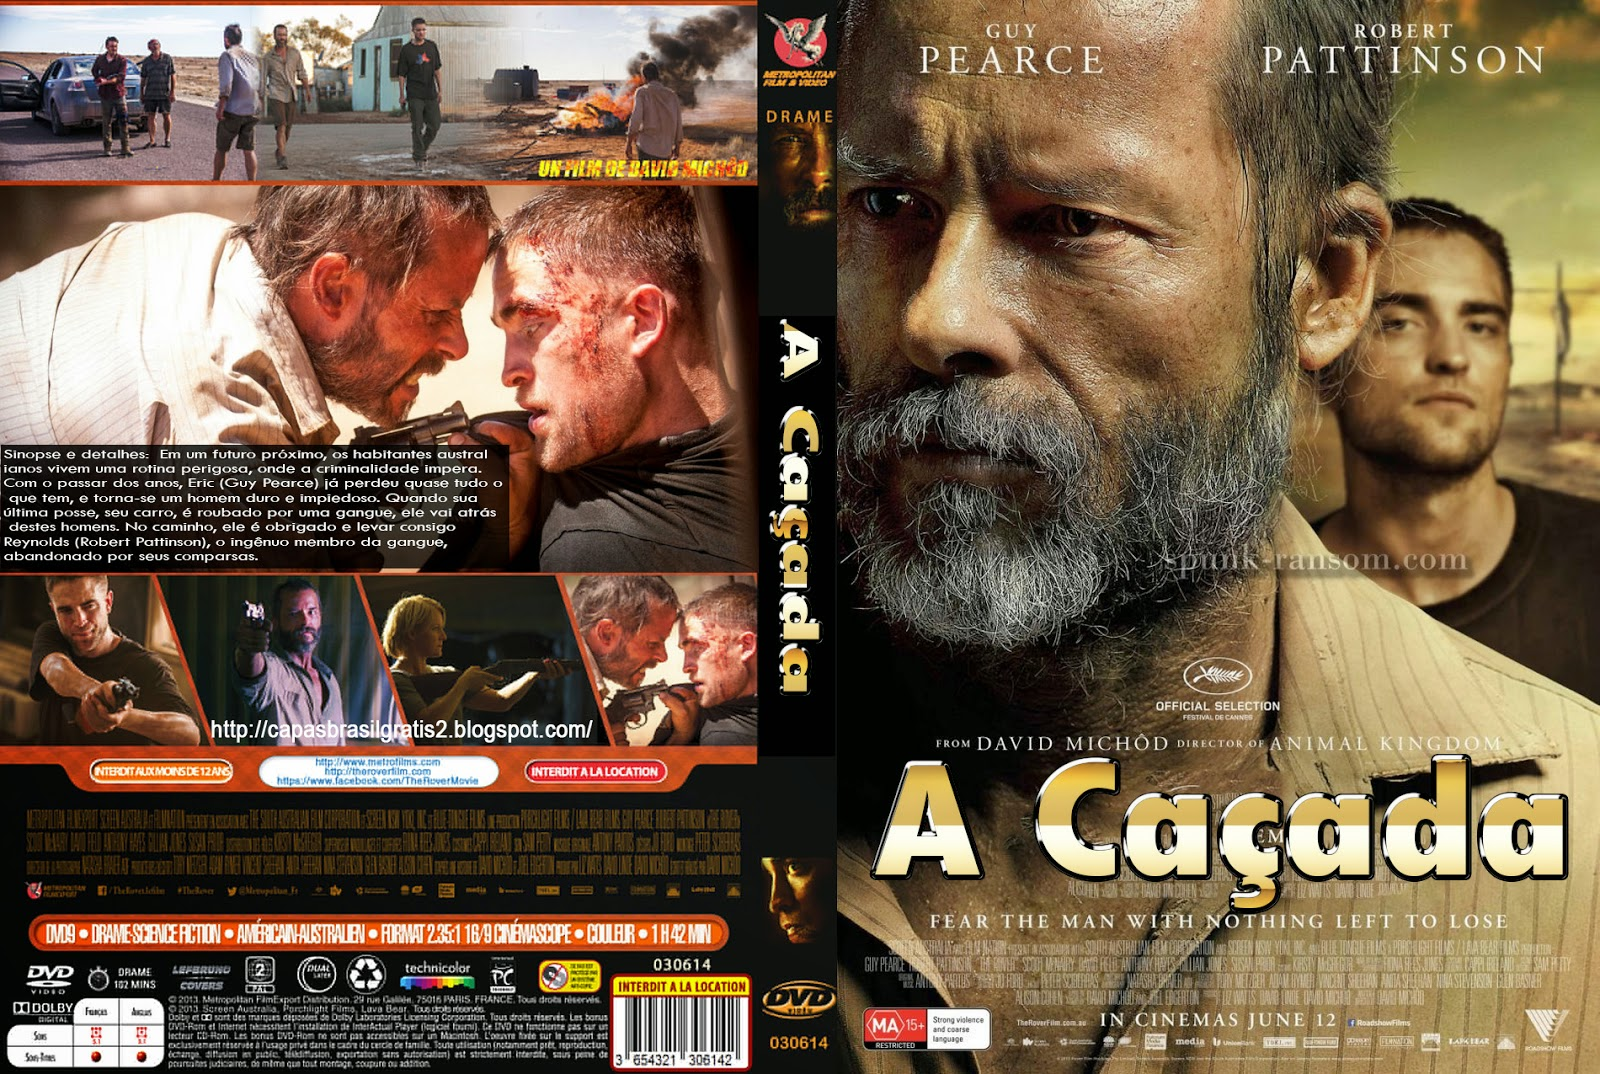 Download A Caçada BRRip XviD Dual Áudio A 2BCA C3 A7ada 2B2014 2B01